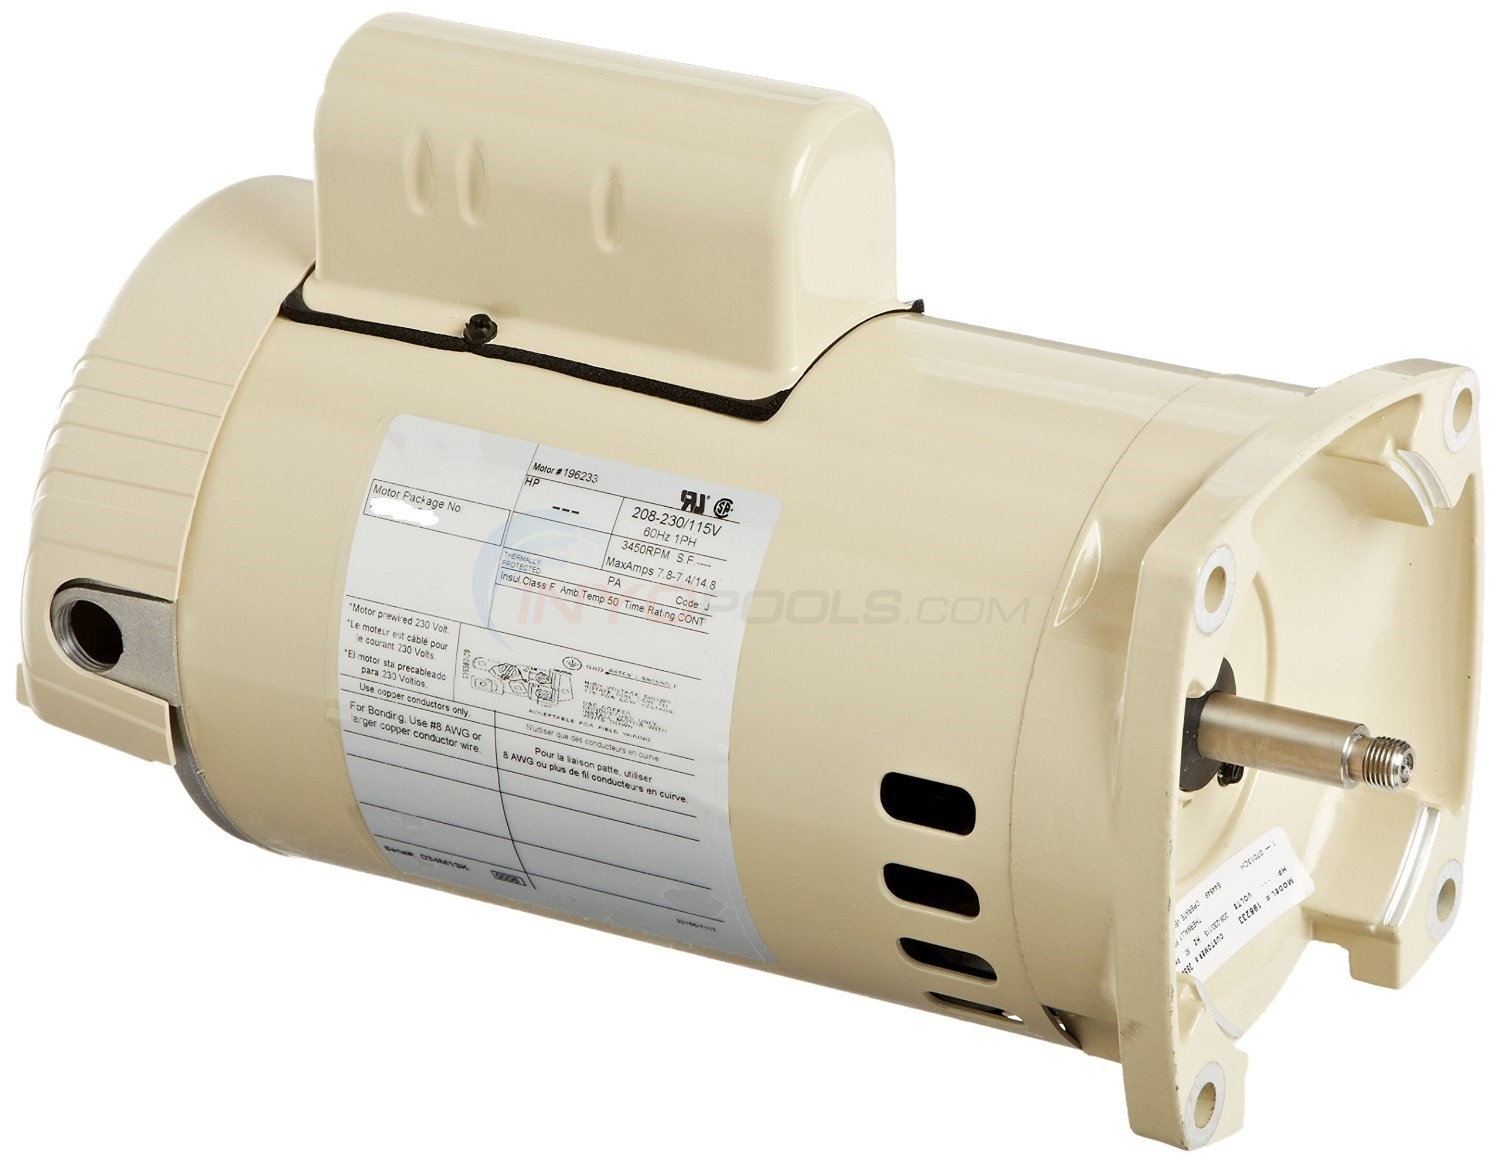 Pentair Replacement Motor 1 HP Full Rate Single Speed Almond - 075234S